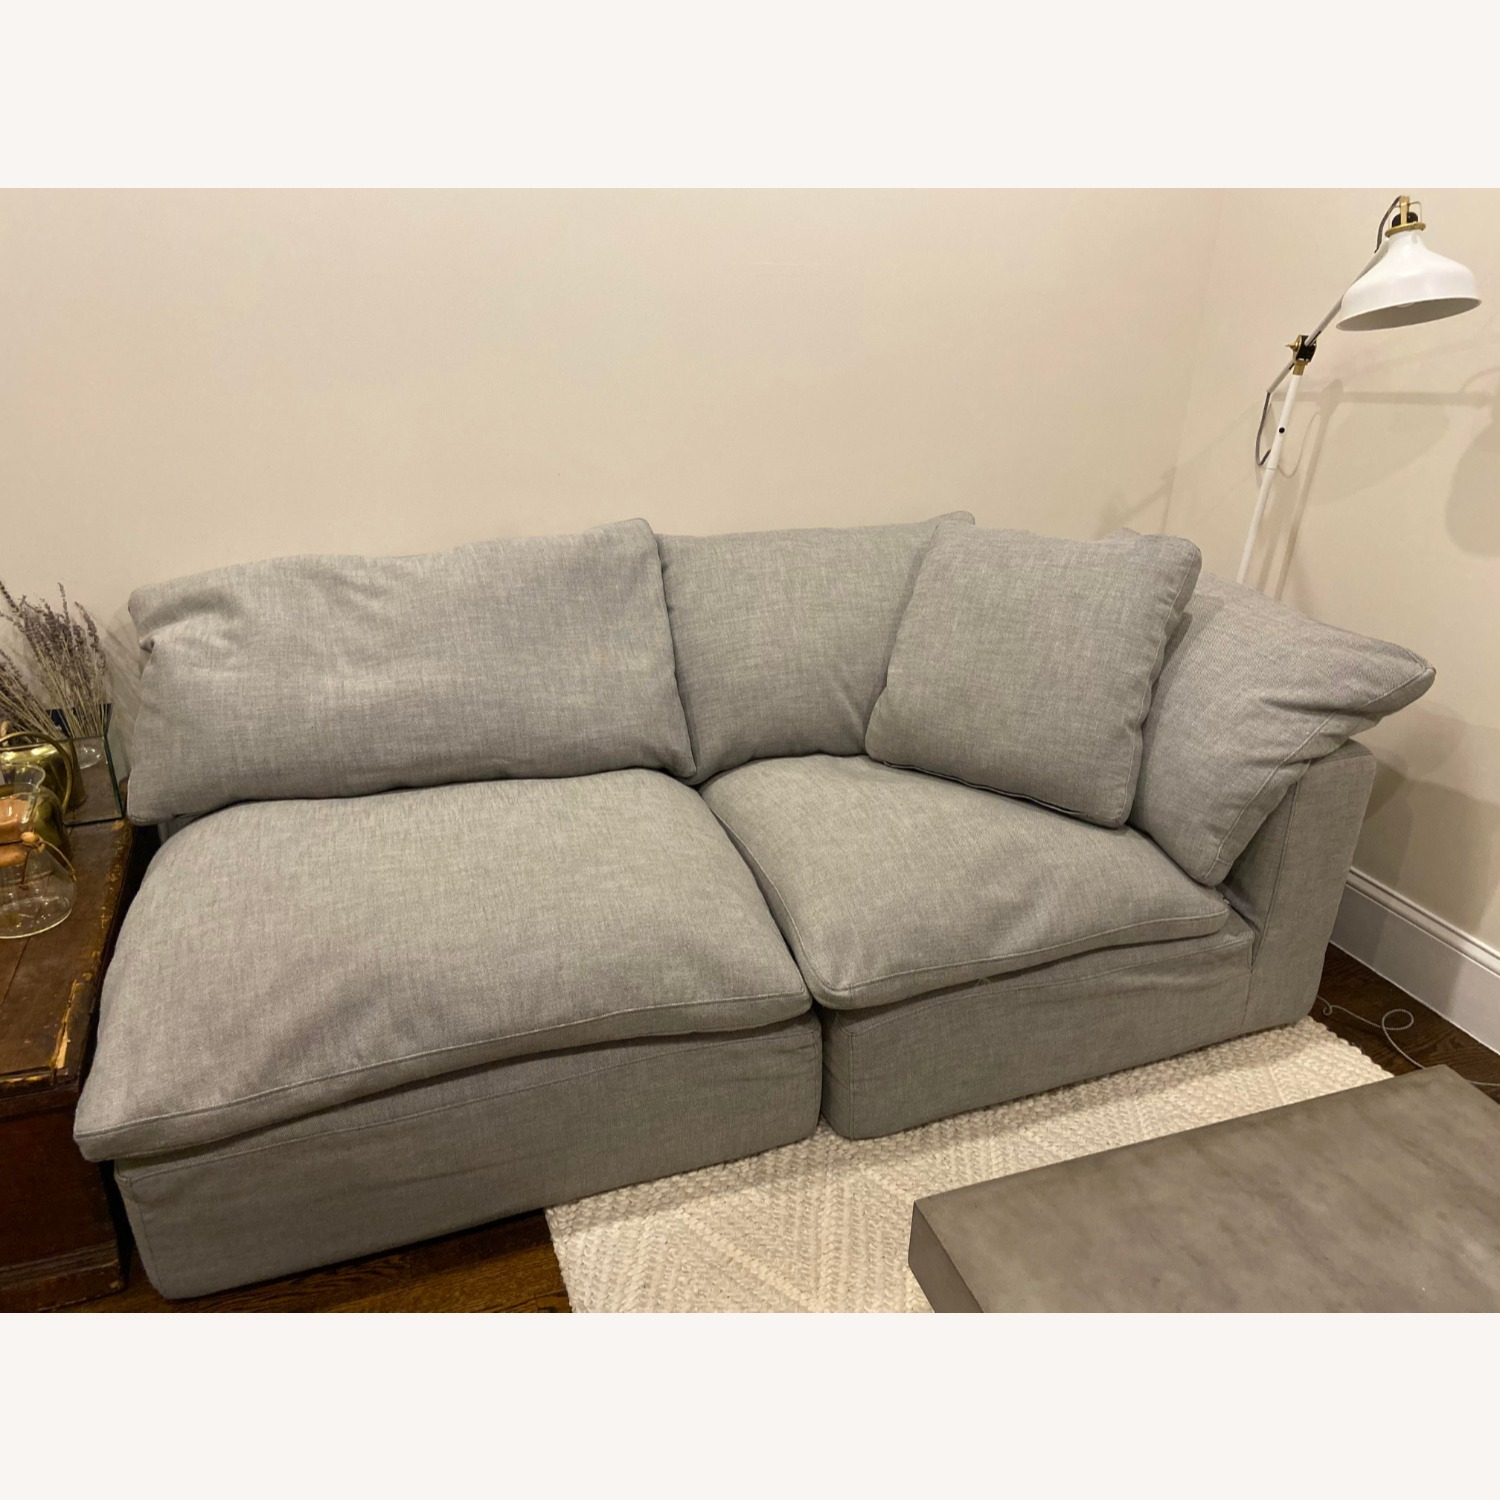 Restoration Hardware Cloud Couch Sectional - image-2